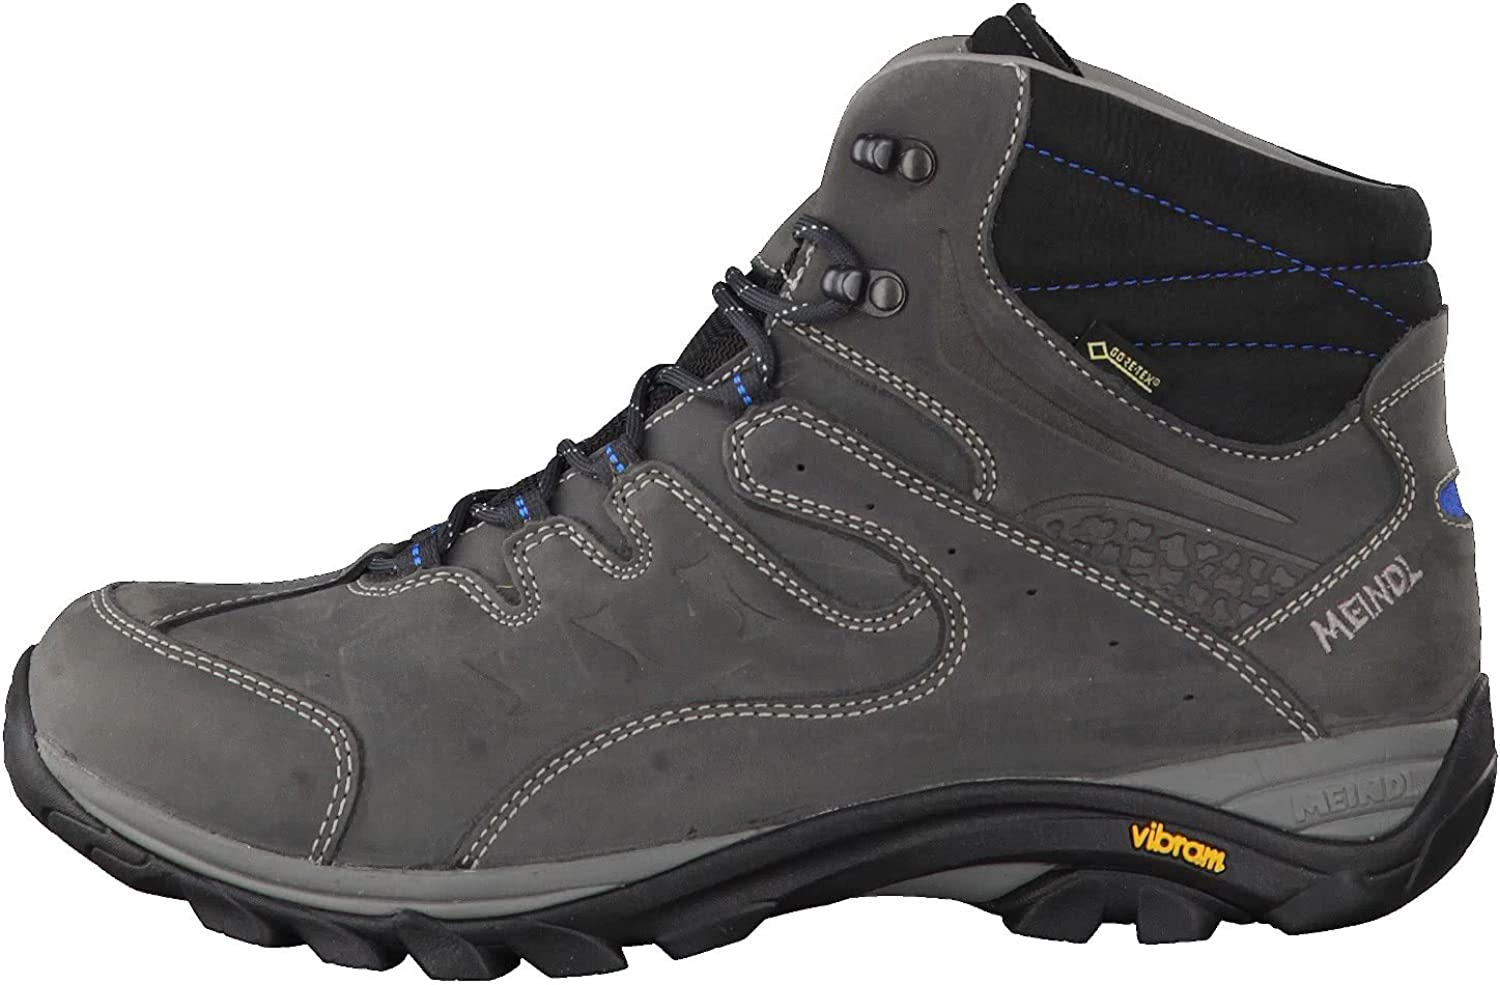 Meindl 3898 31 Chaussures Basses pour Homme